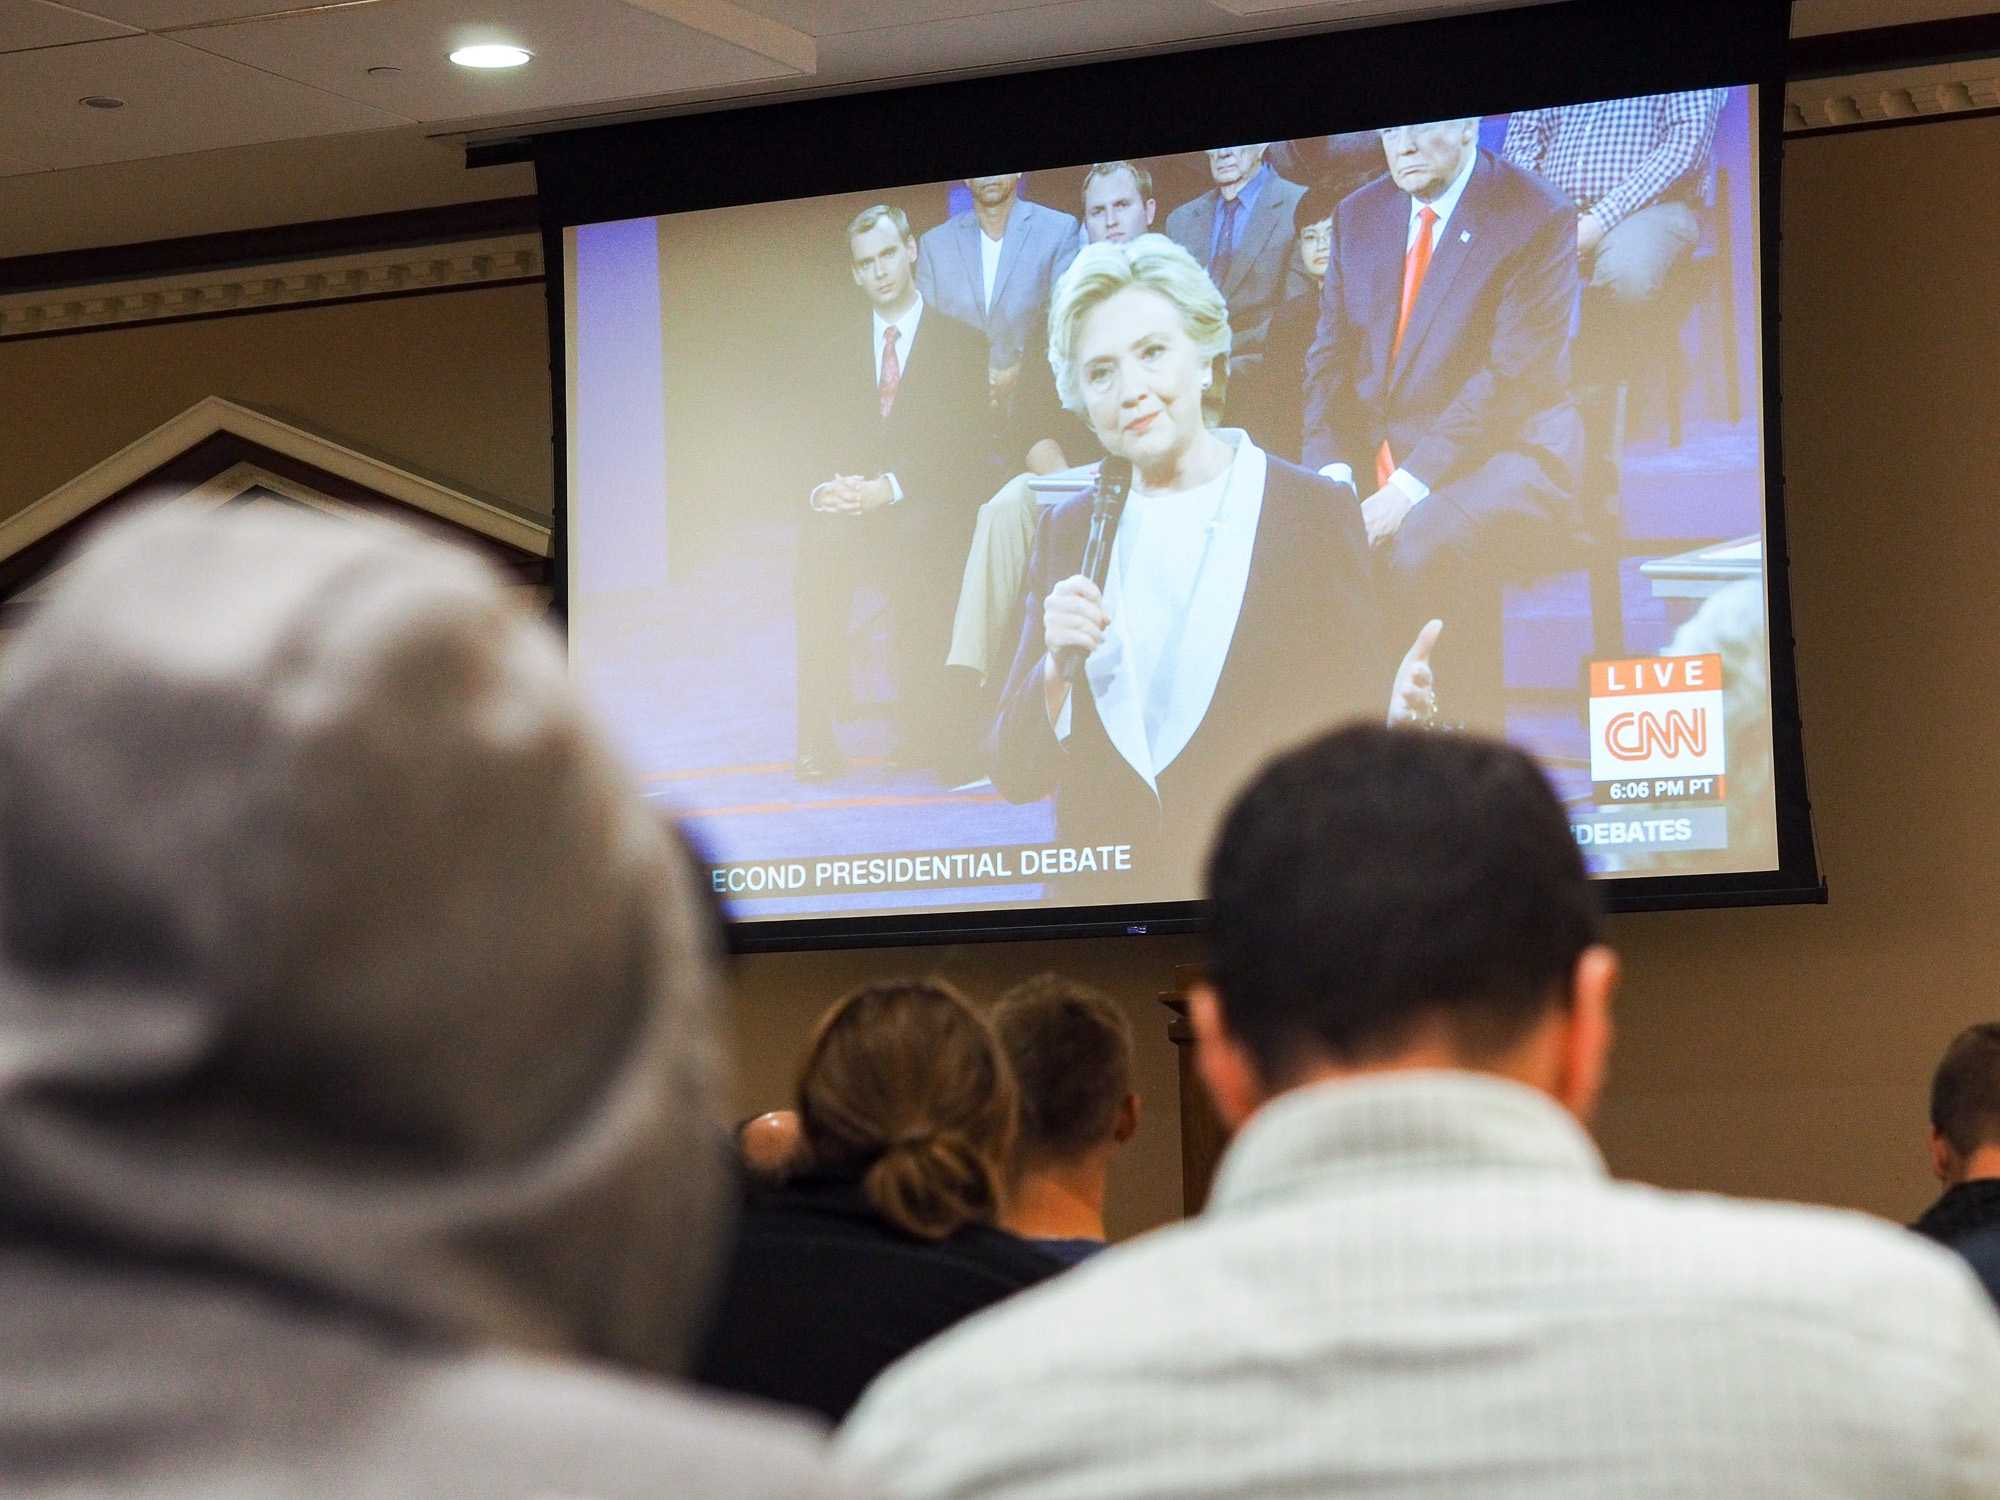 Students congregate at Illini Union to watch the second Presidential Debate between Democratic nominee Hilary Clinton and Republican nominee Donald Trump. October 9, 2016.